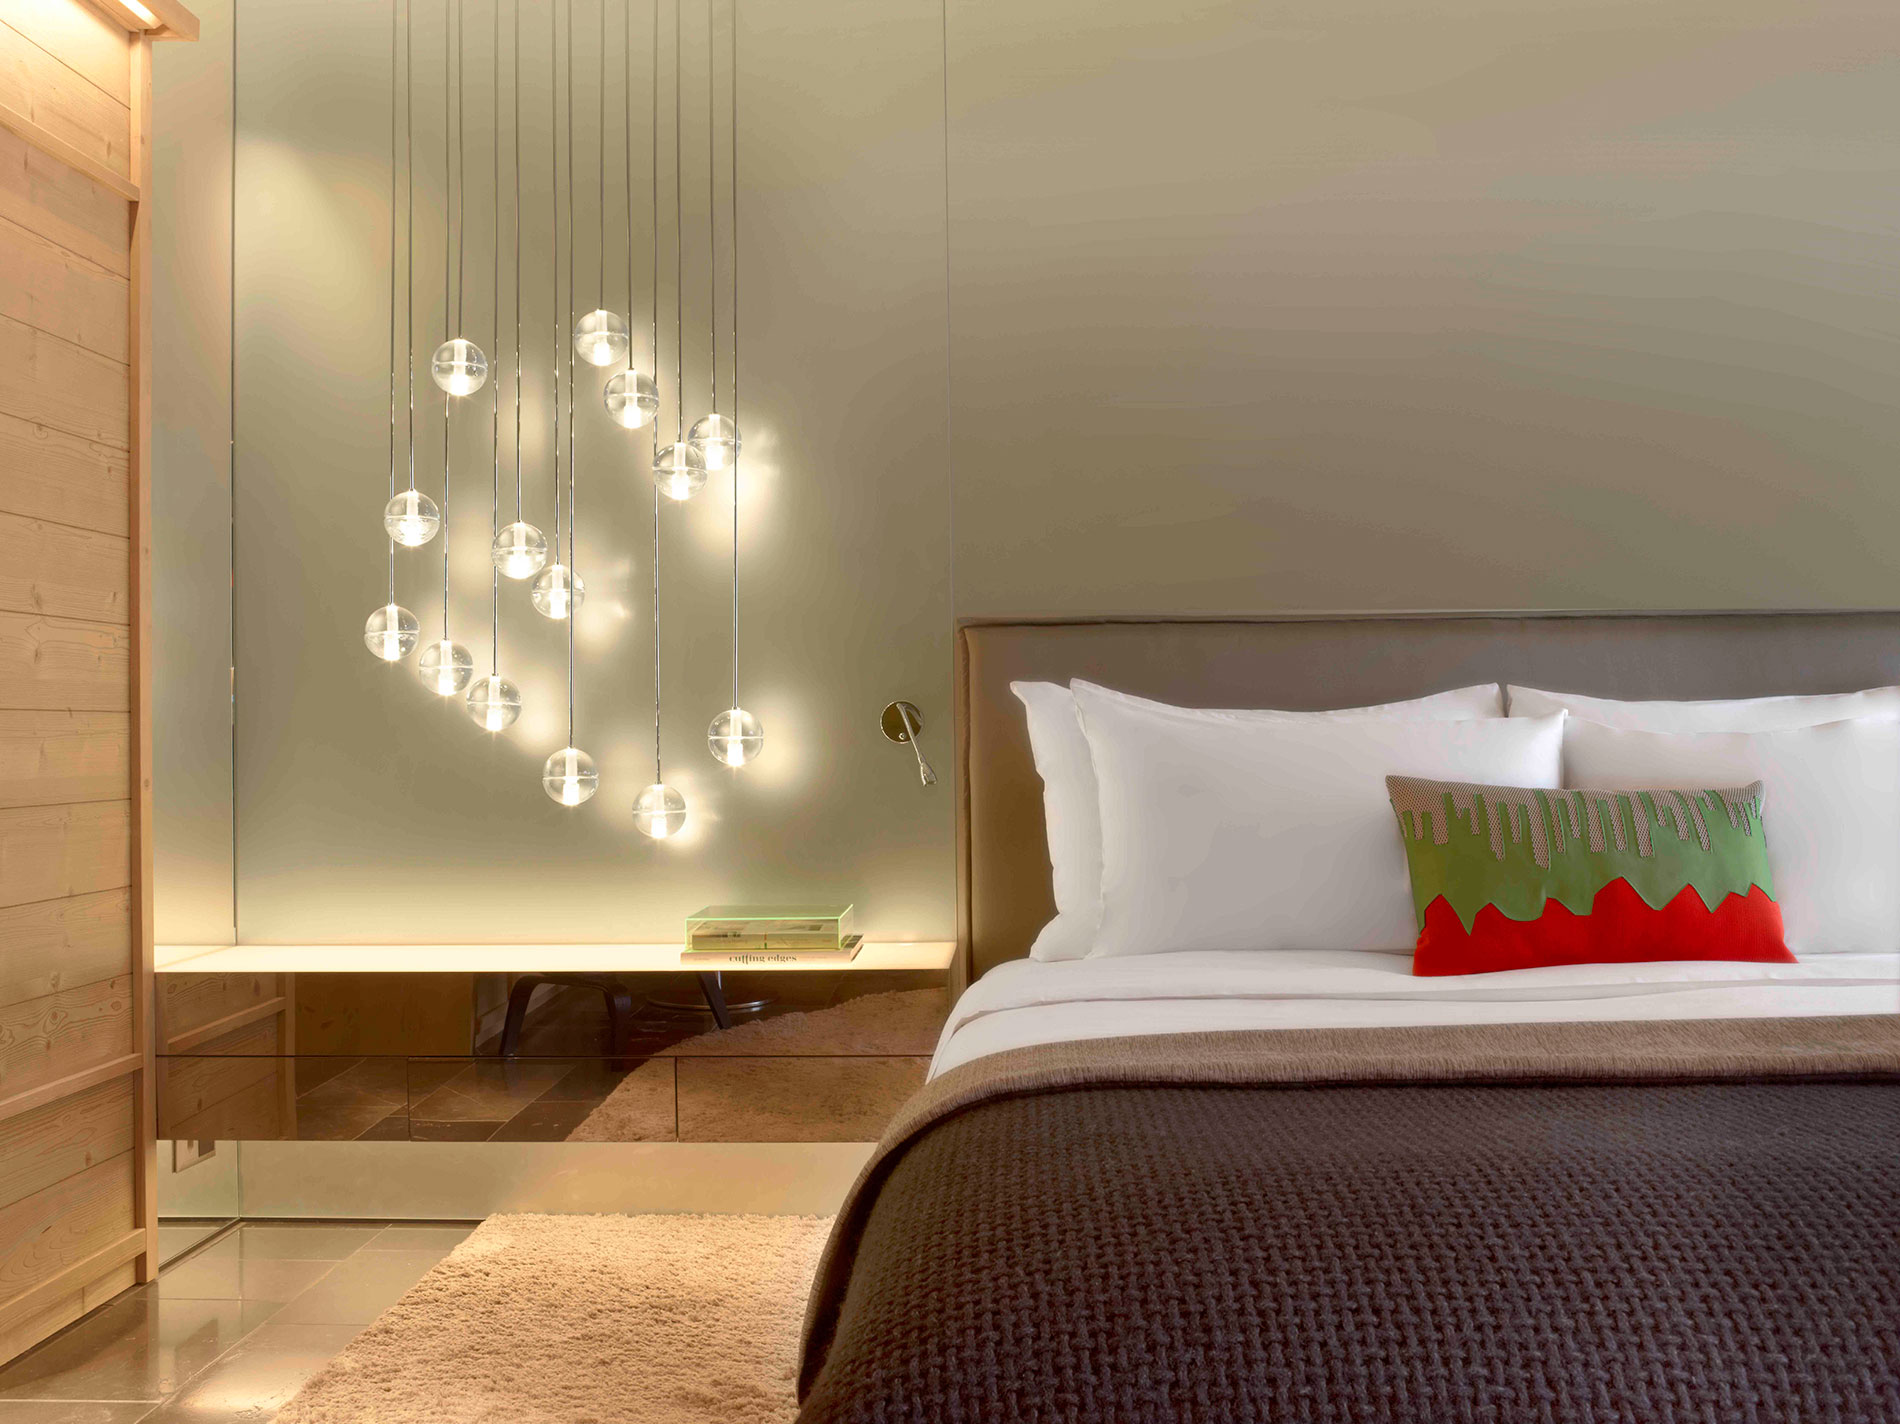 Design miami basel and w hotels worldwide announce the for Hotel world design